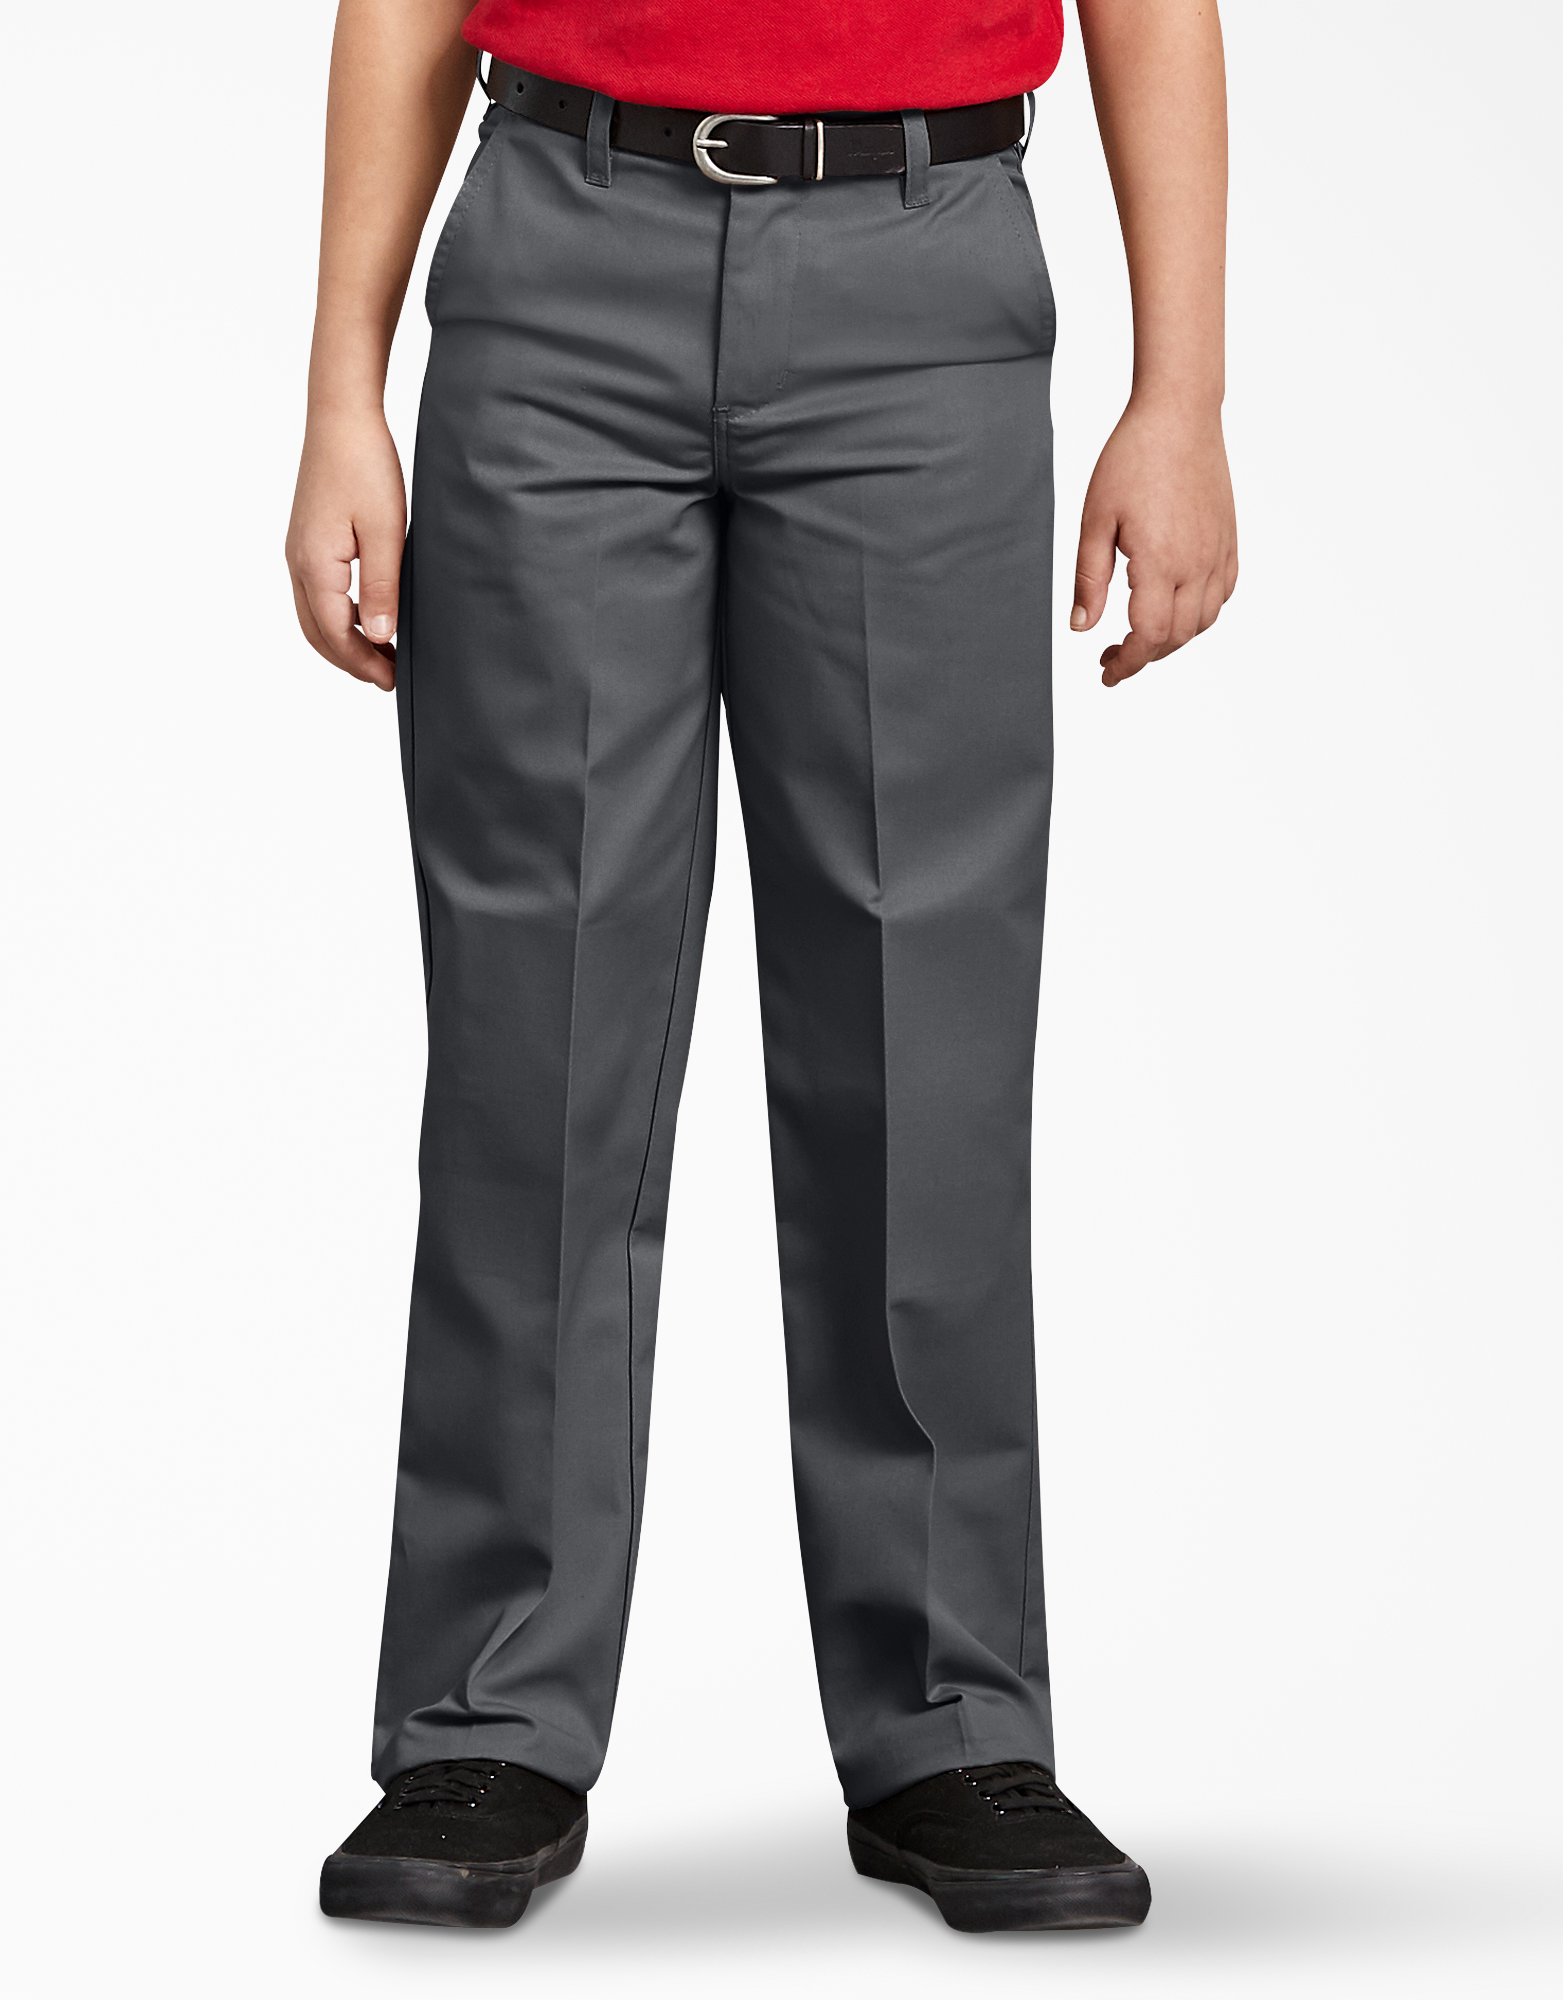 Boys' Classic Fit Straight Leg Flat Front Pants, 8-20 - Charcoal Gray (CH)